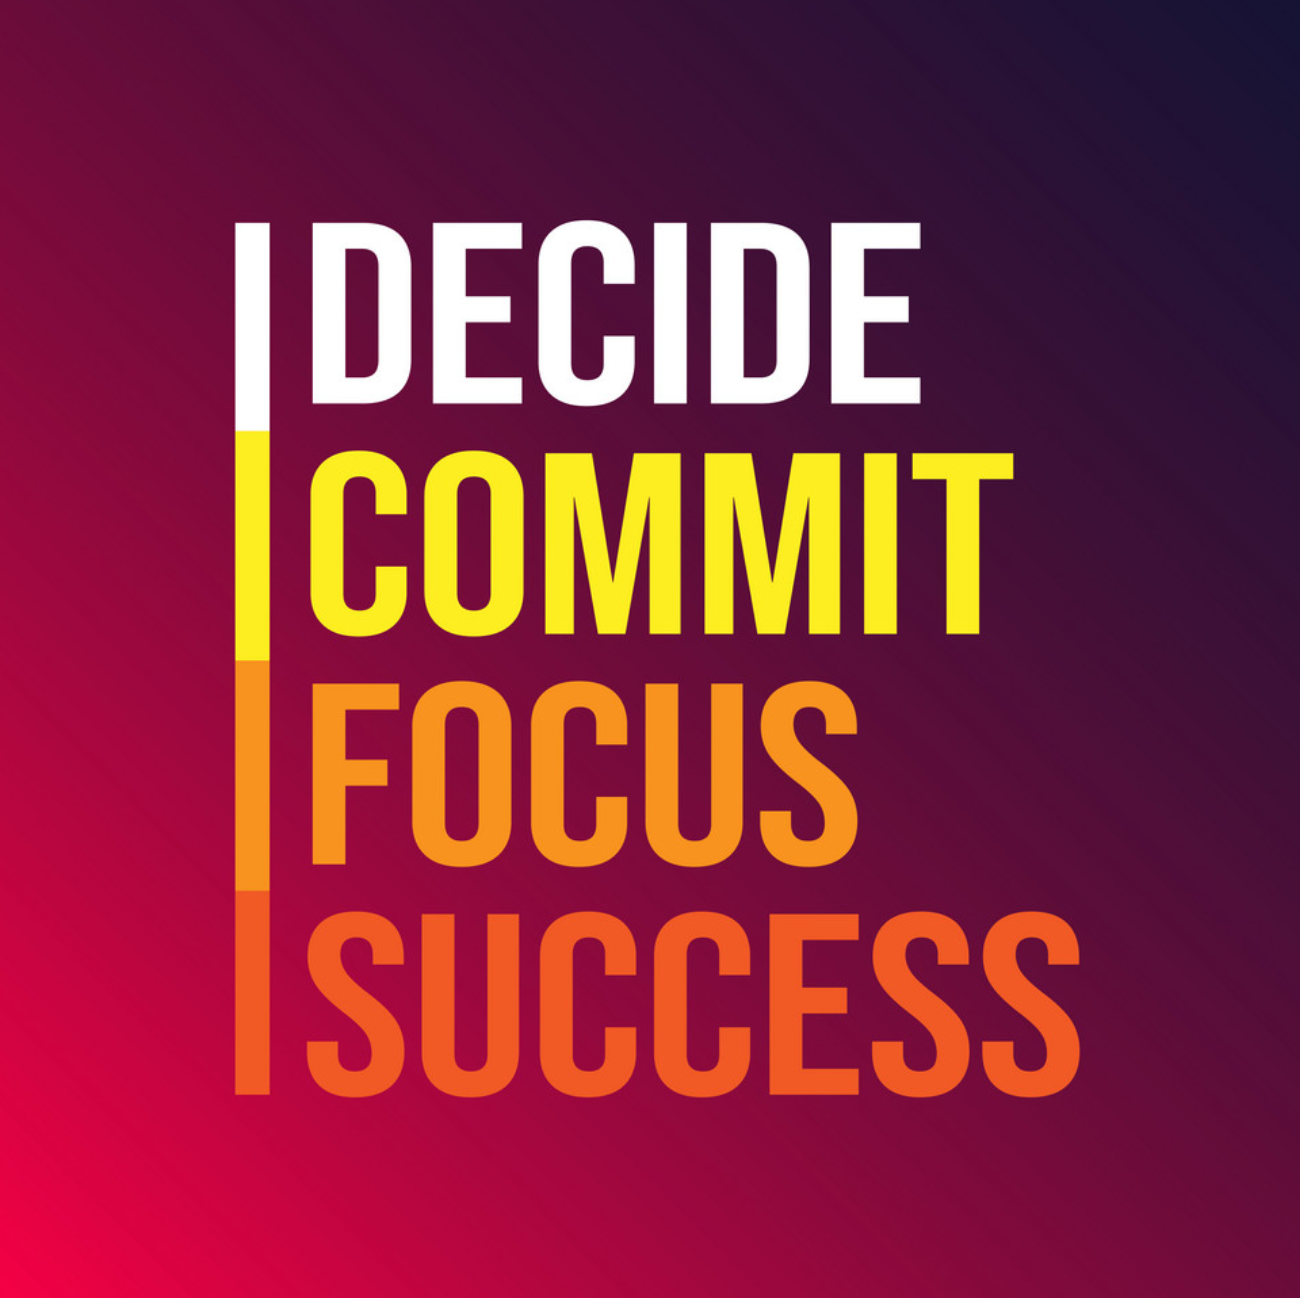 Decide Commit Focus Success